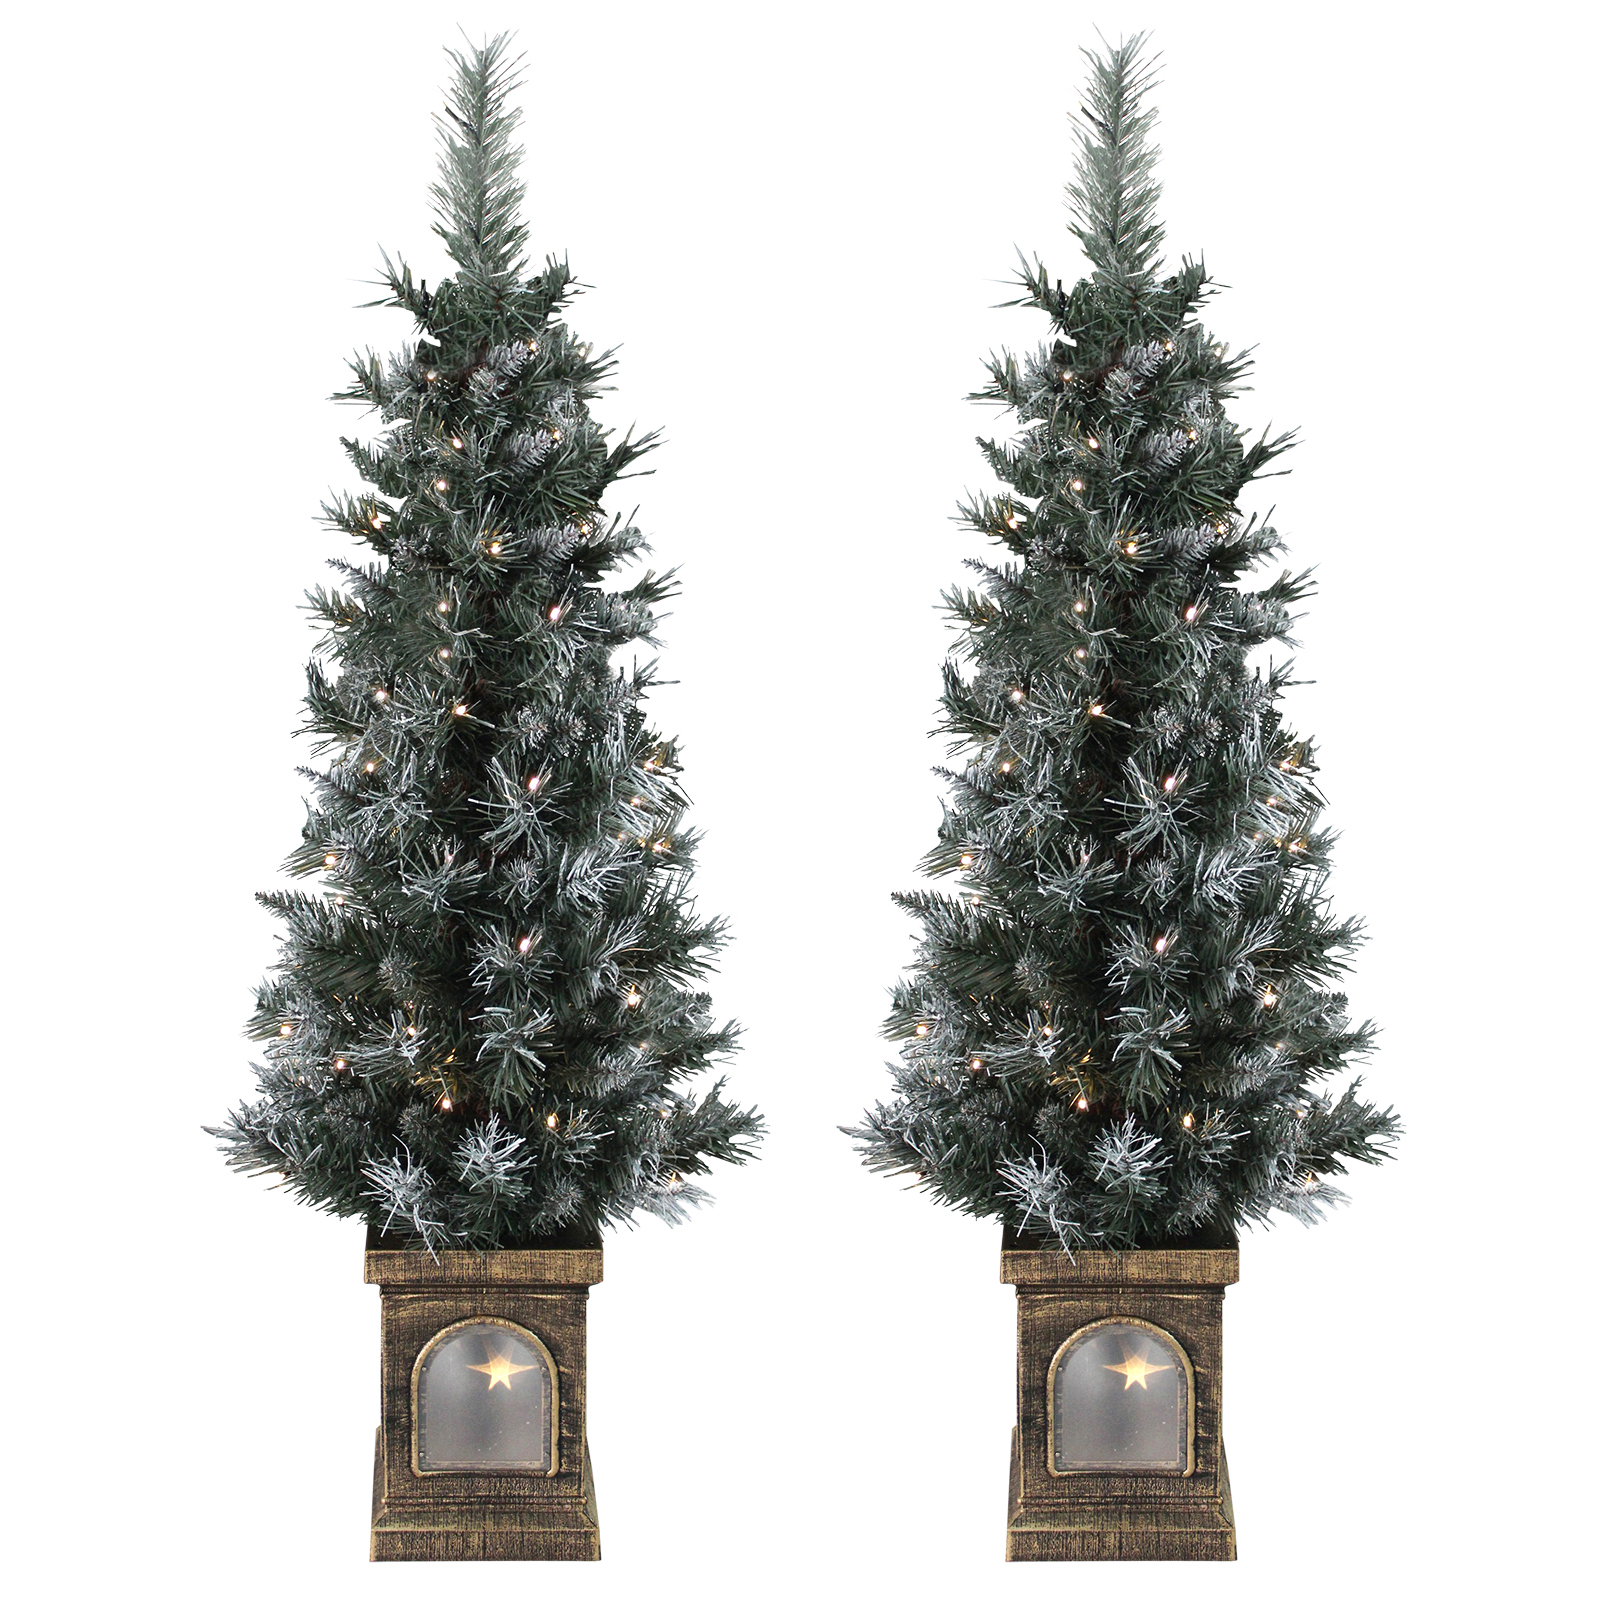 Small Christmas Trees Uk: Set Of 2 Pre-Lit 4ft (120cm) Frosted Christmas Xmas